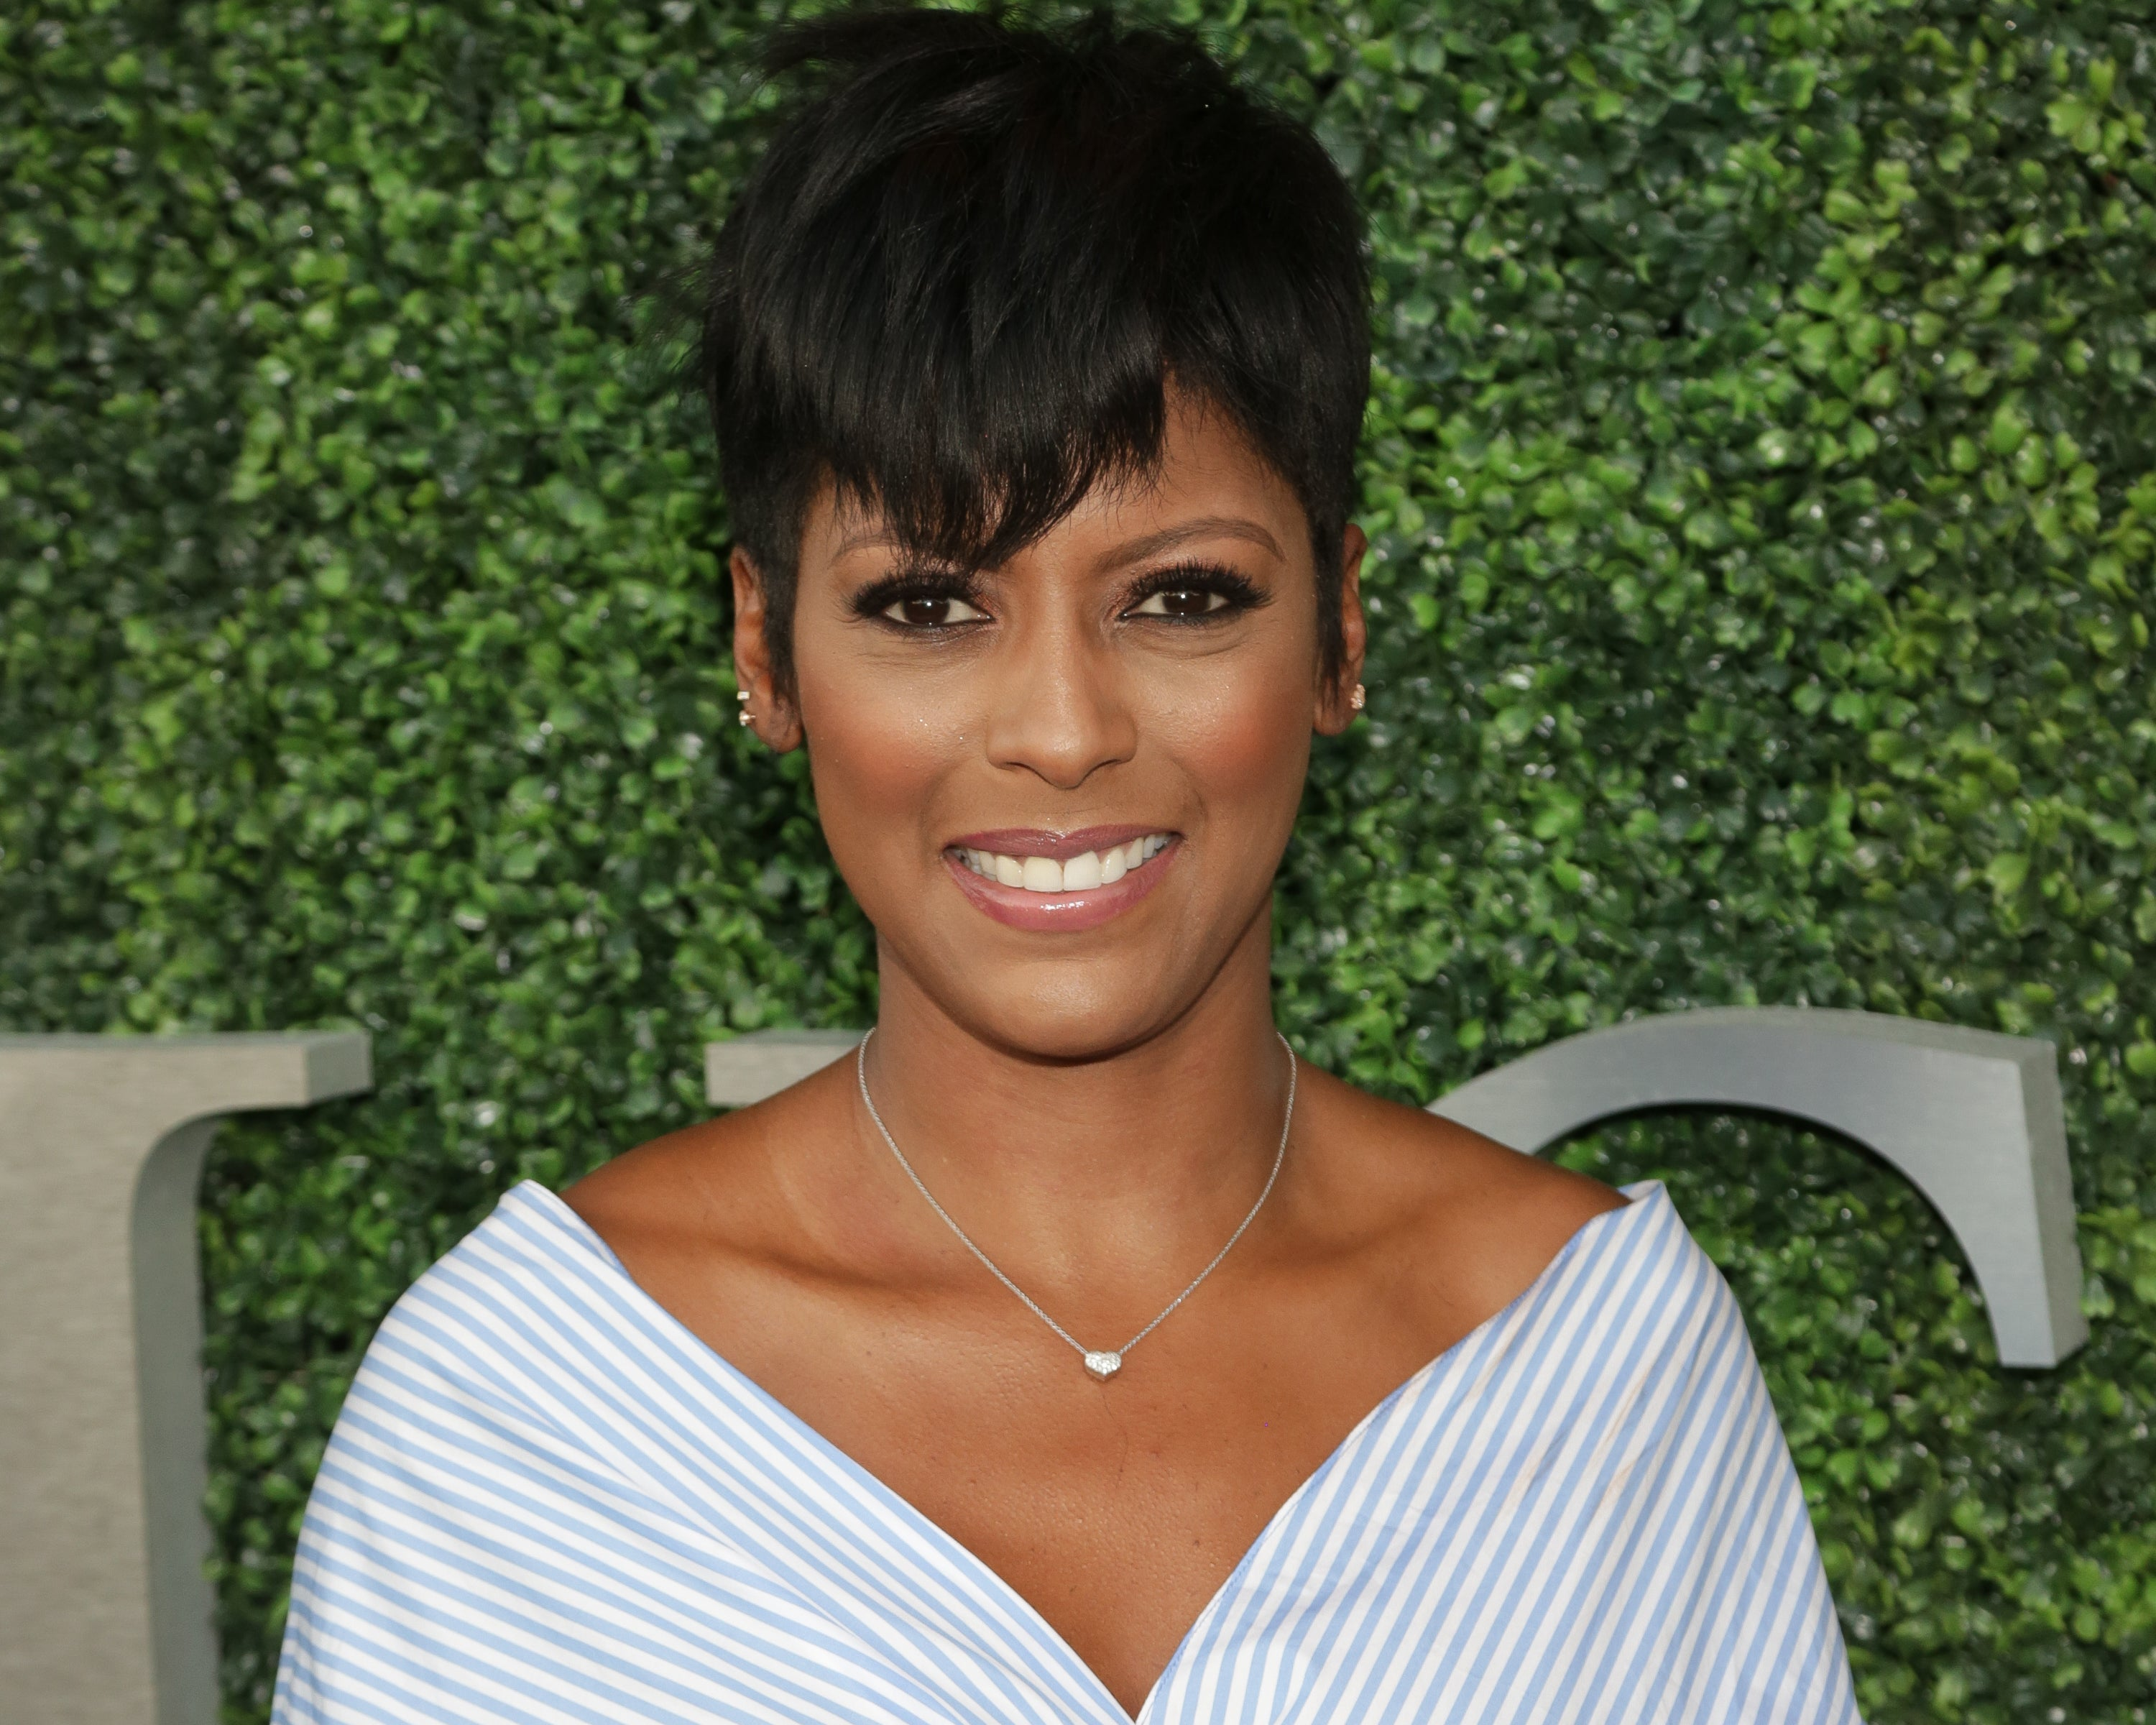 Tamron Hall Loves Her Short Hair – Despite Getting 'the Cruelest, Most Awful' Comments Online